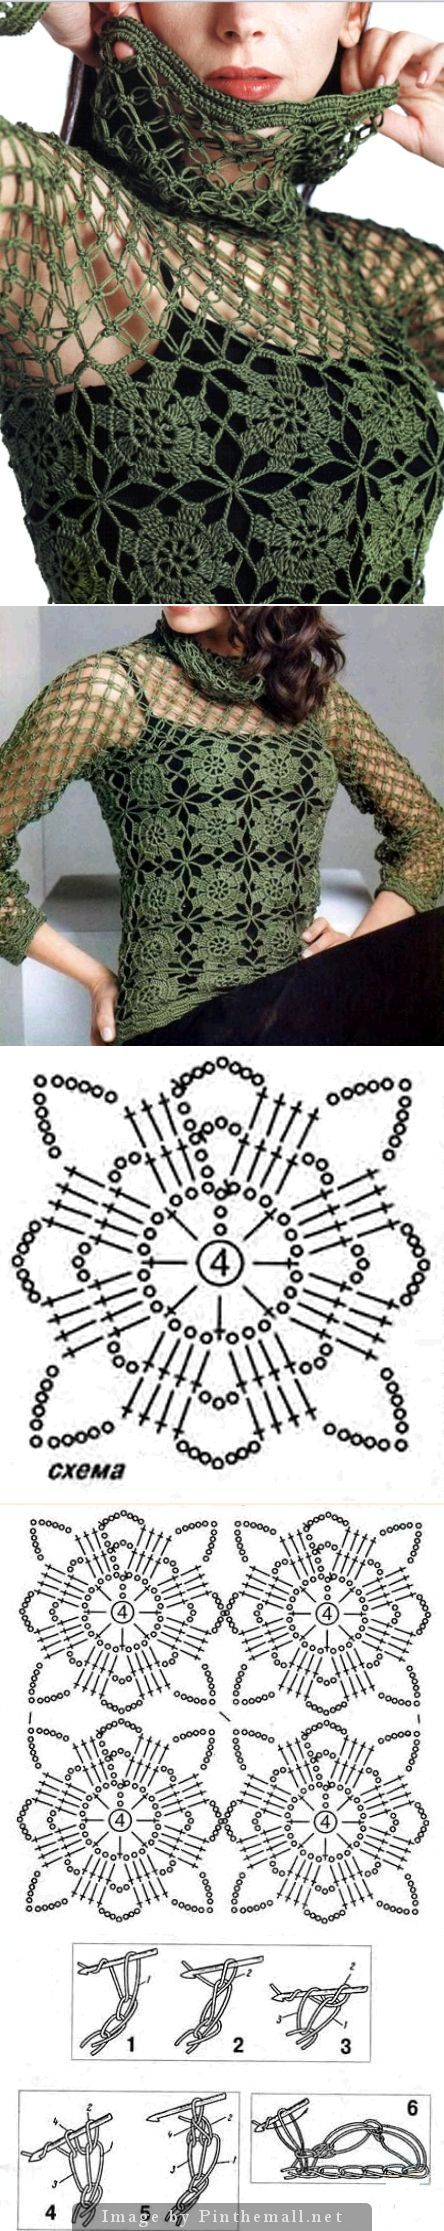 Crochet motif pullover with collar or cowl ♪ ♪... #inspiration #diy #crochet #knit GB http://www.pinterest.com/gigibrazil/boards/